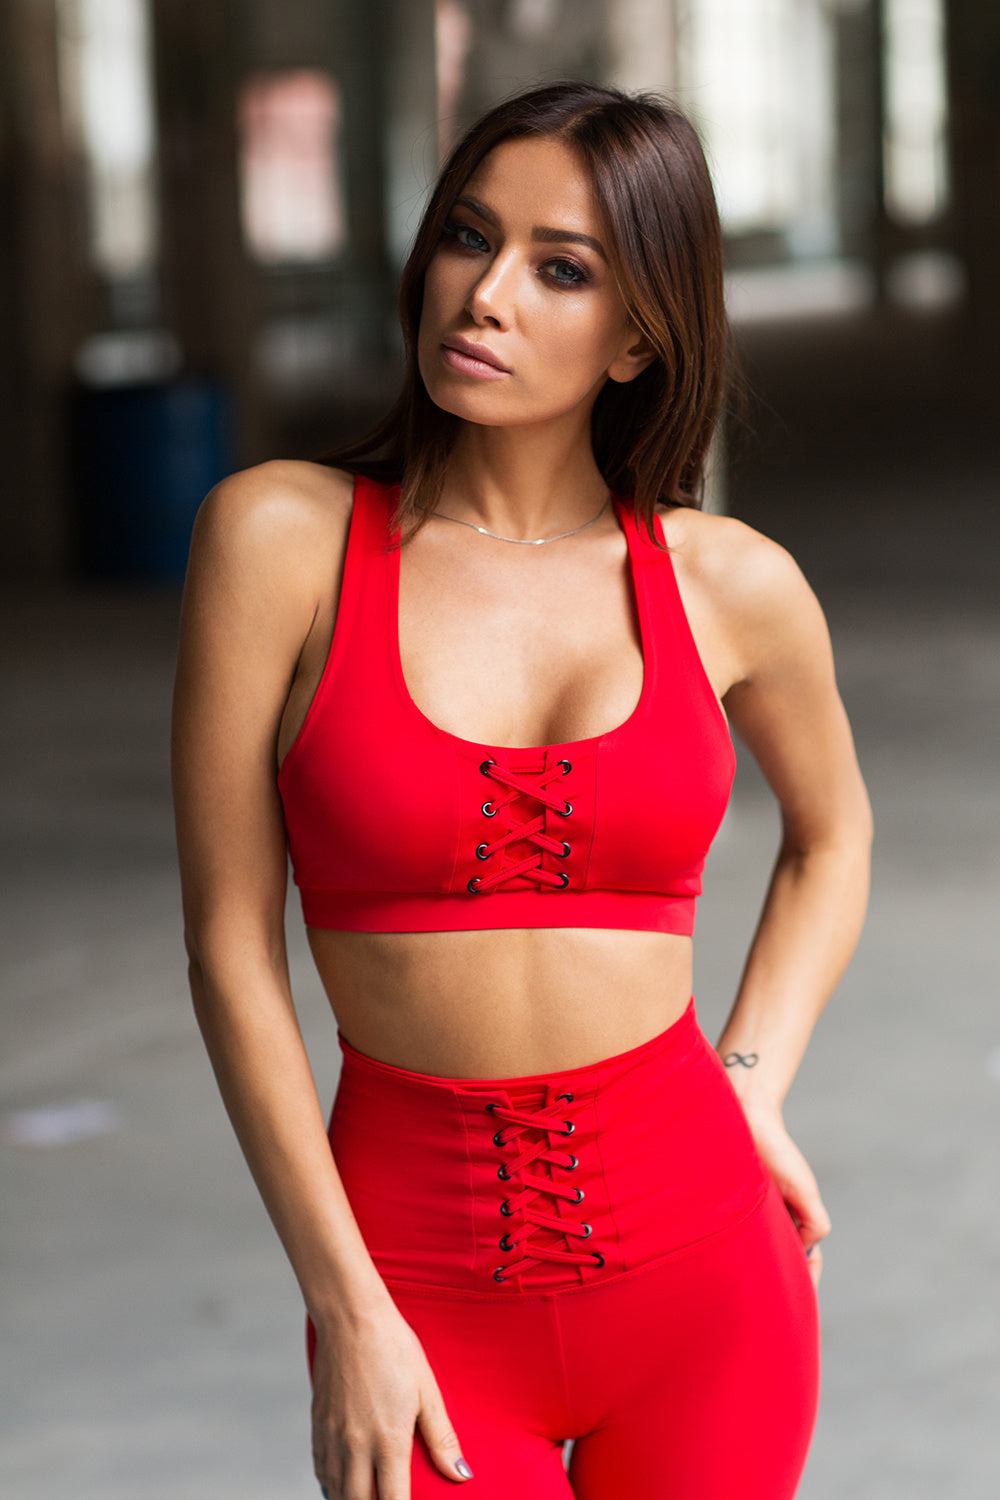 Top Red Corset - Designed for Fitness